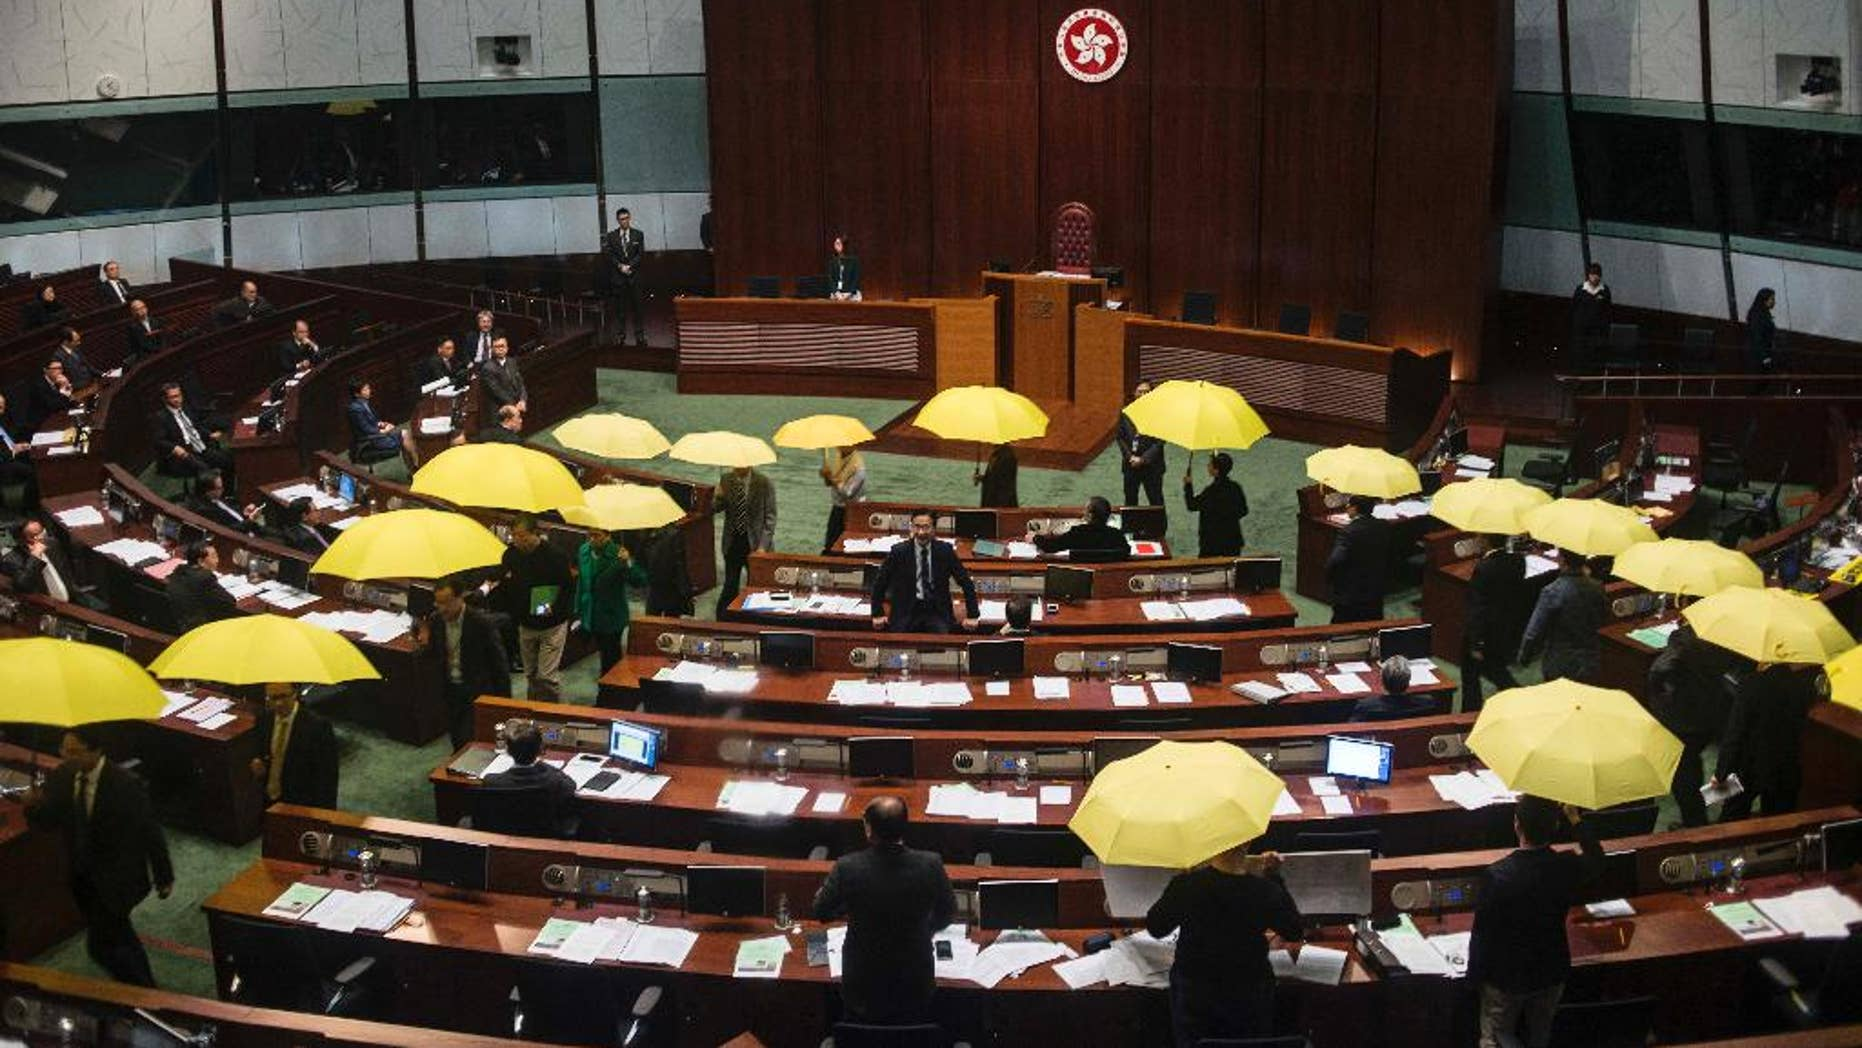 Pro-democracy legislators holding yellow umbrellas walk out of the  Legislative chamber to show their protest in Hong Kong, Wednesday, Jan. 7, 2014. Pro-democracy legislators walked out of the chamber Wednesday to protest the government's intention to stick with a proposal to screen candidates for the city's top executive in 2017, an issue that sparked massive street protests throughout the fall. (AP Photo)